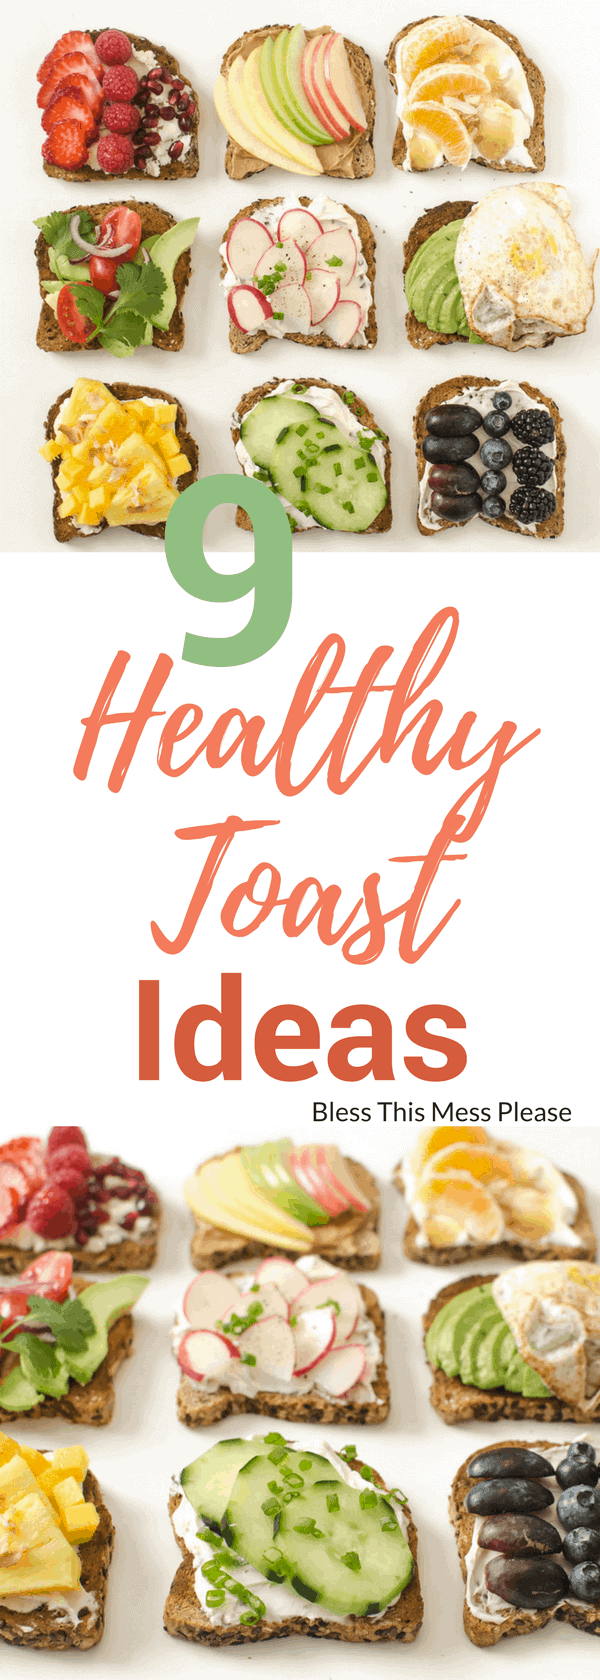 Healthy Toast Ideas